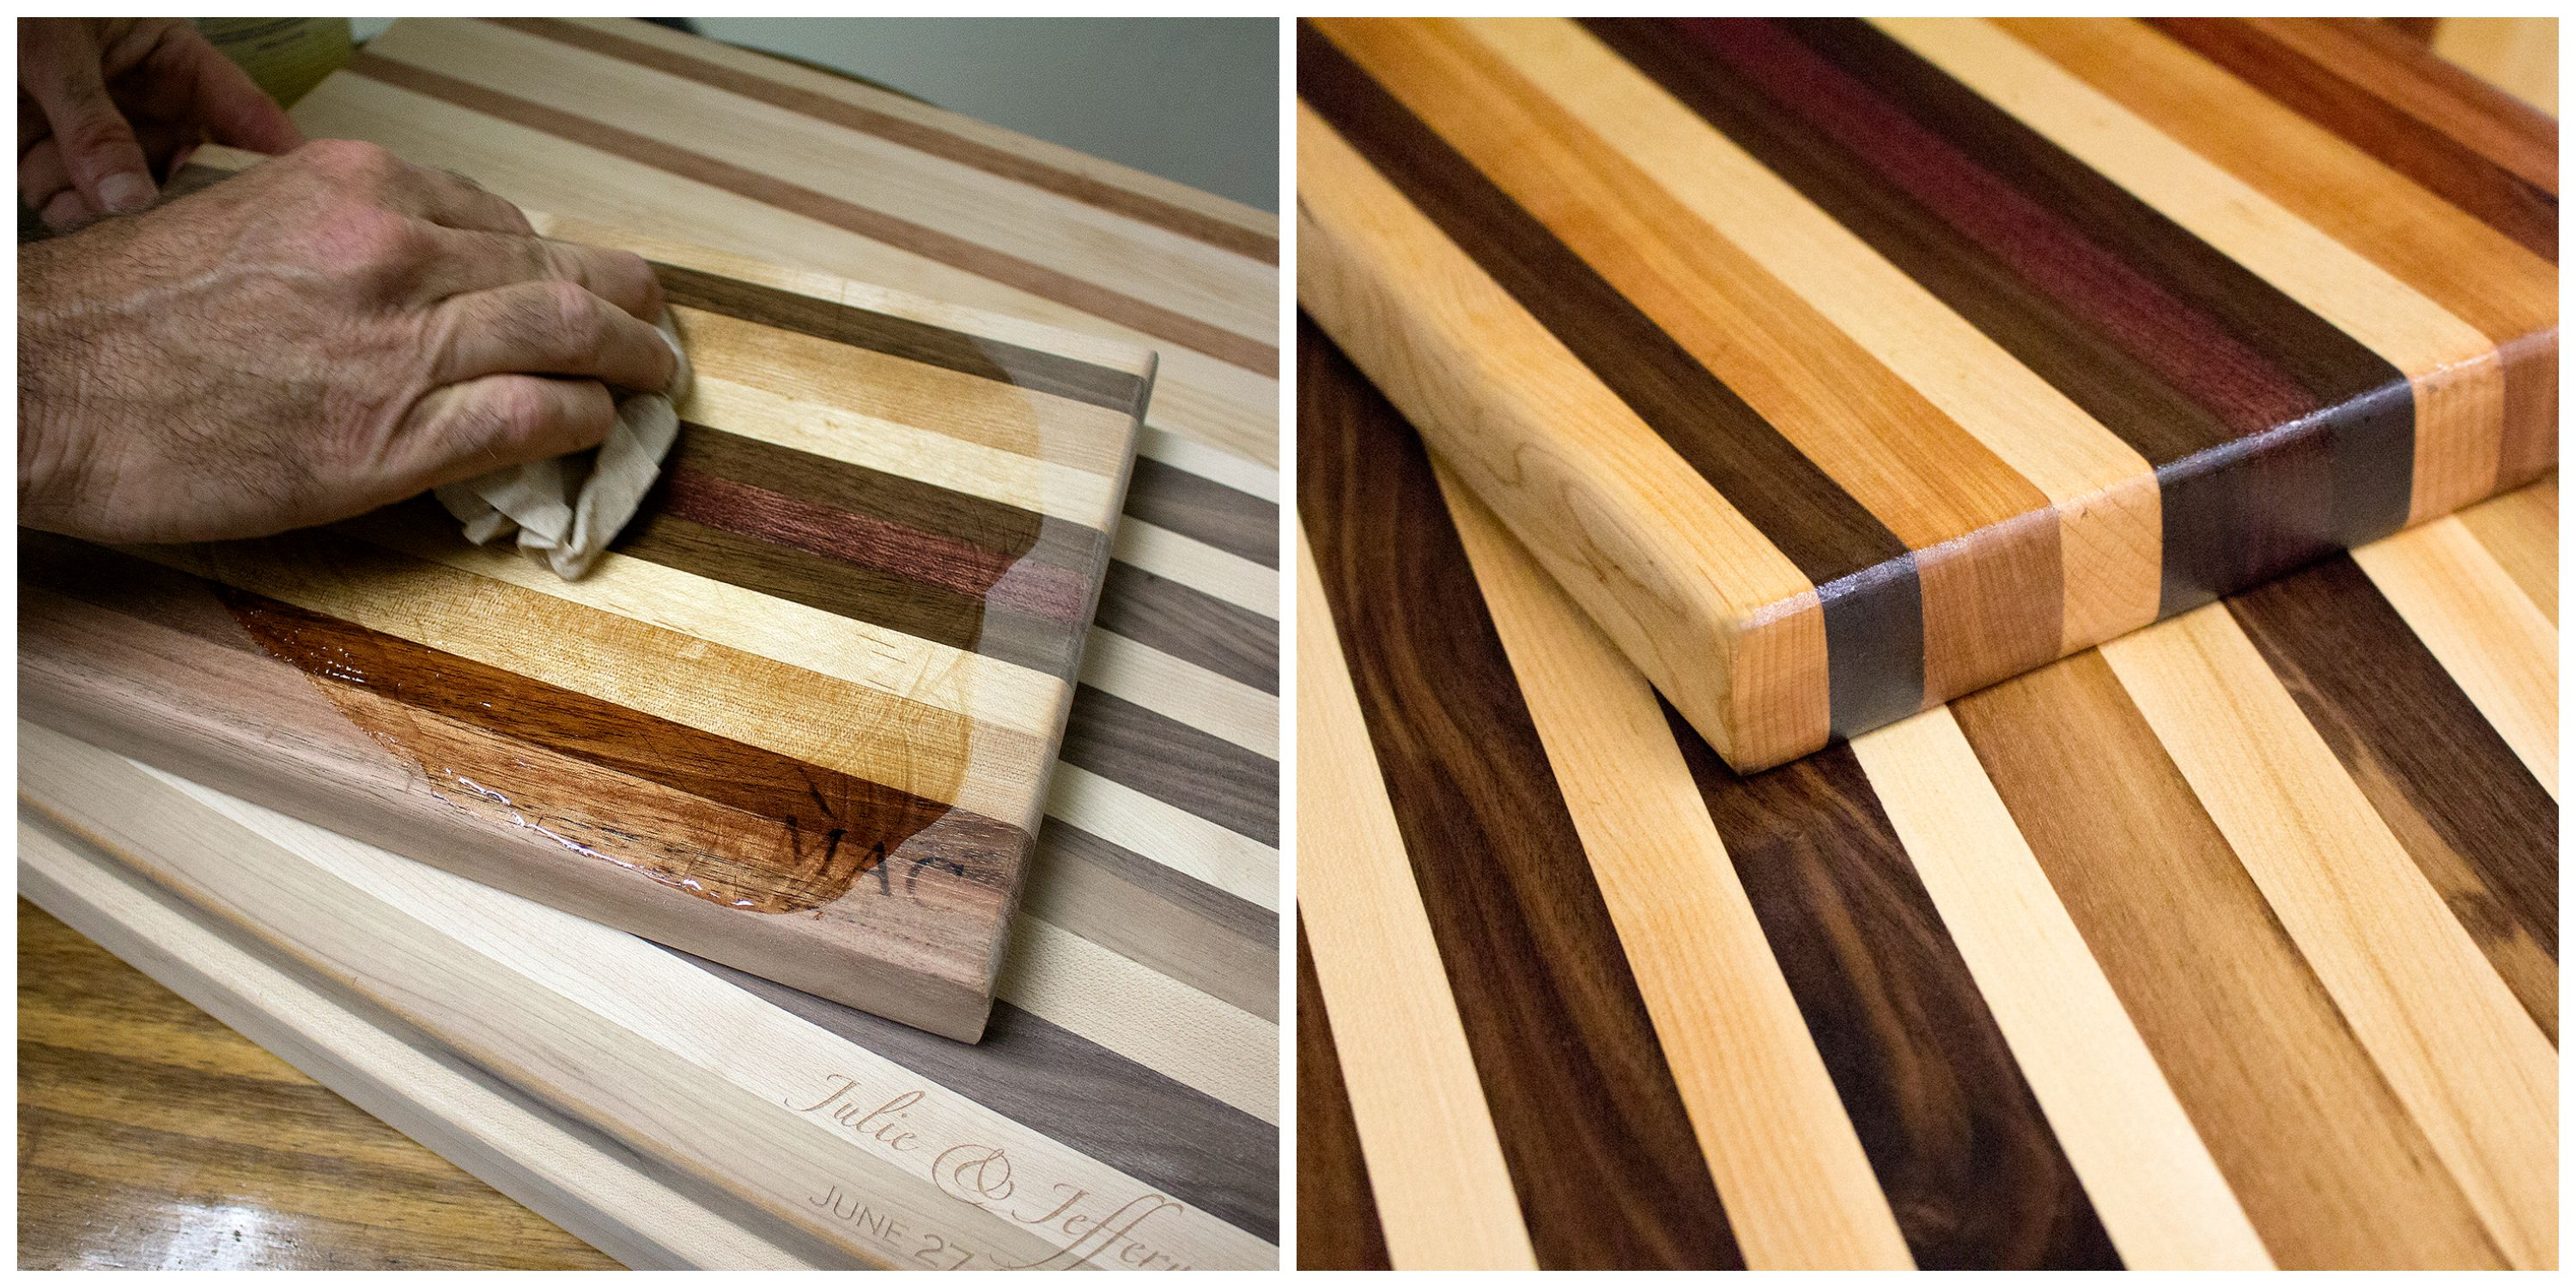 top 5 tips how to properly care for your wood cutting board